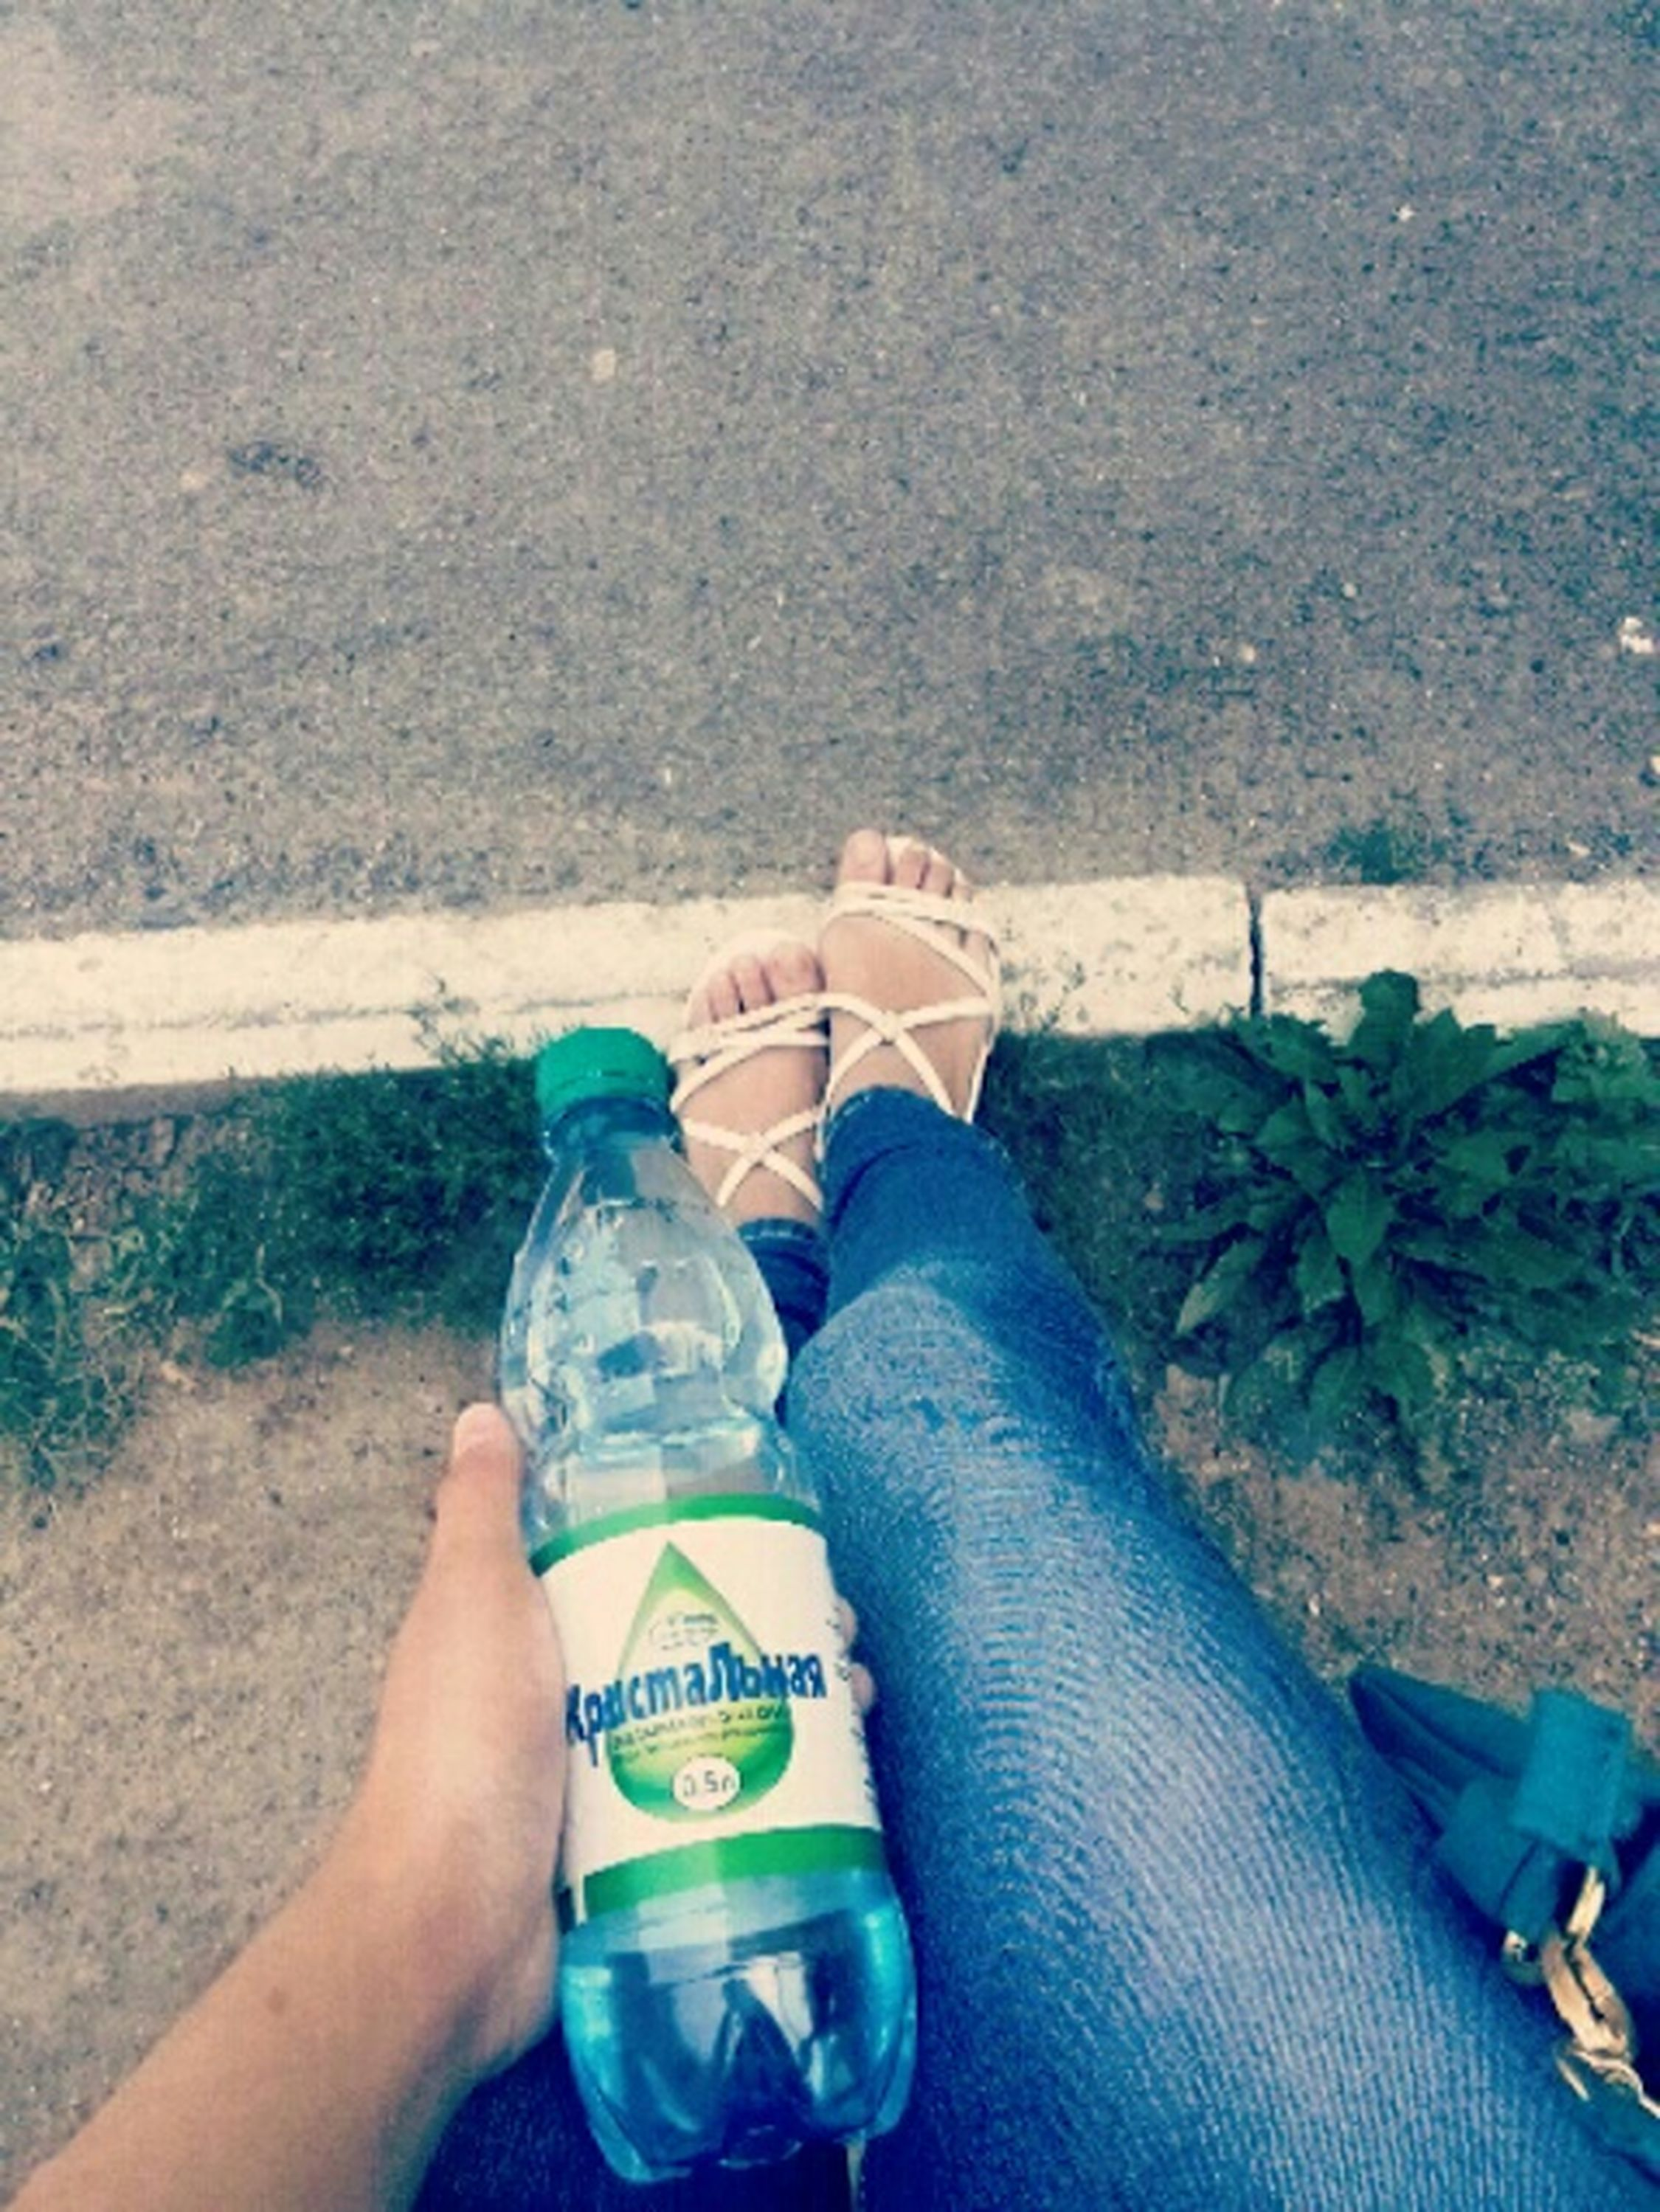 The Weather Is Hot Heat Very Tired  So Thirsty Beverage Water Crystal Love ♥♥♥